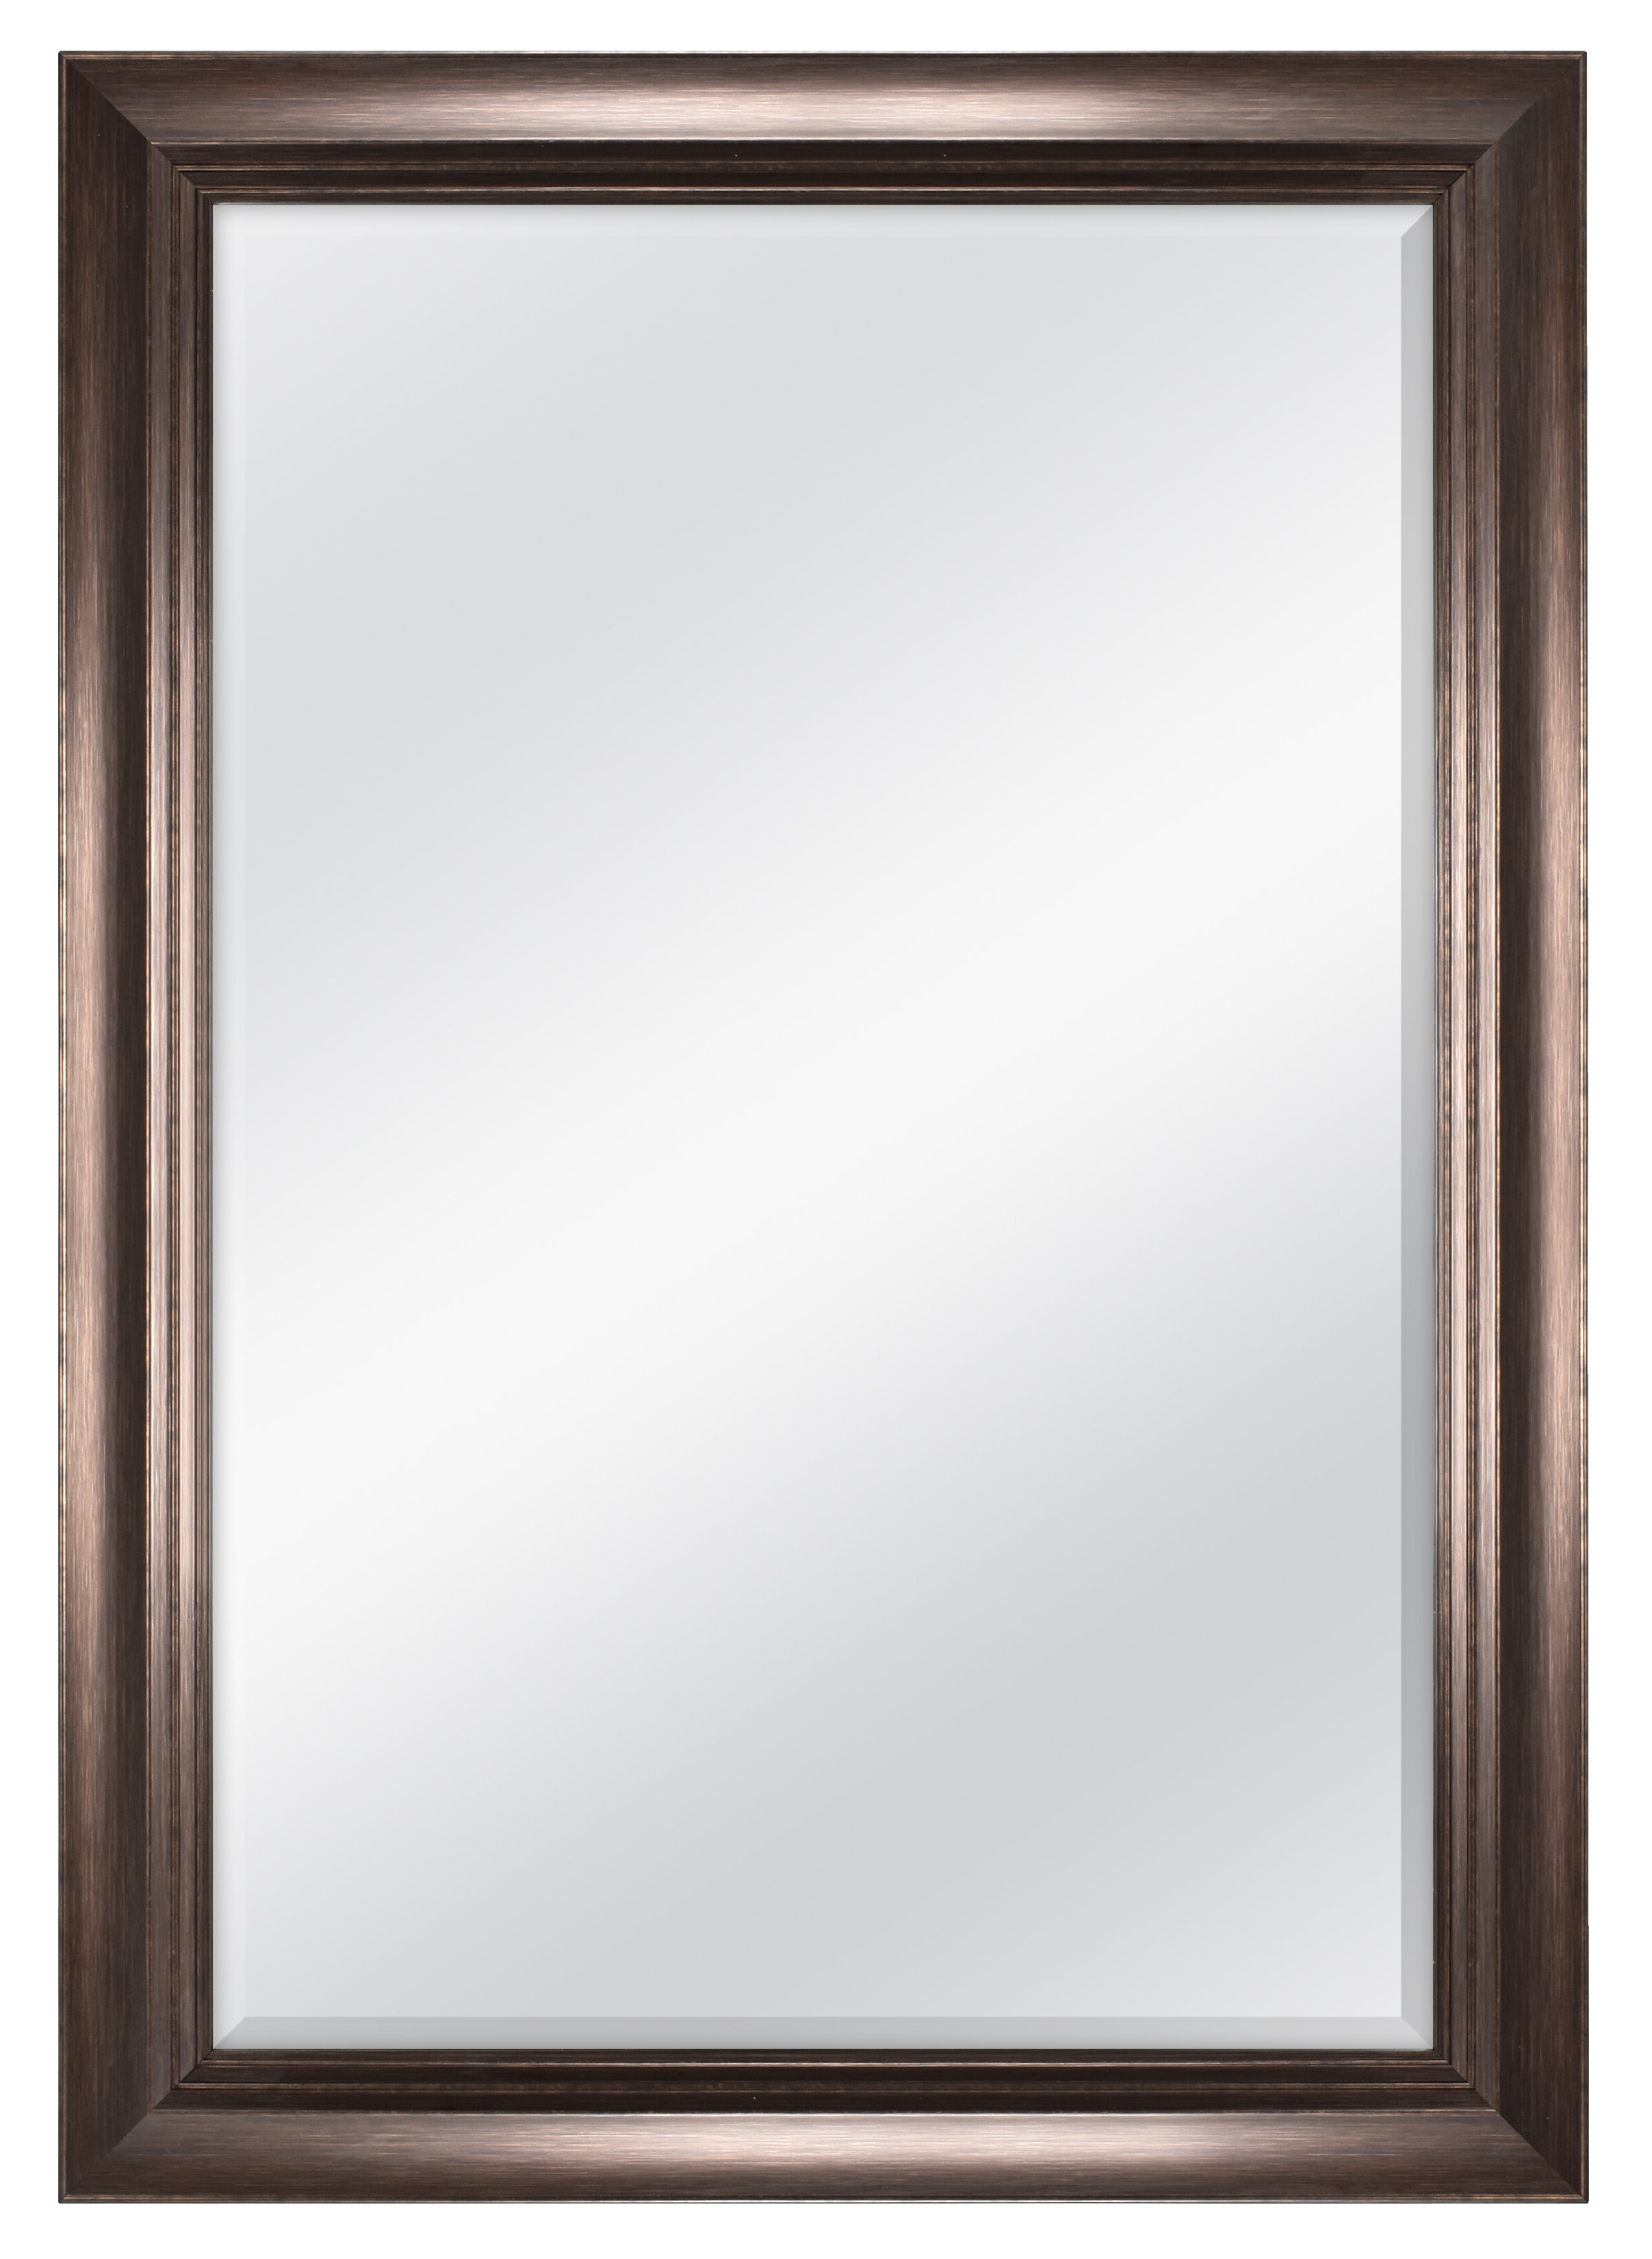 Best And Newest Radcliffe Beveled Wall Mirror With Dedrick Decorative Framed Modern And Contemporary Wall Mirrors (View 3 of 20)